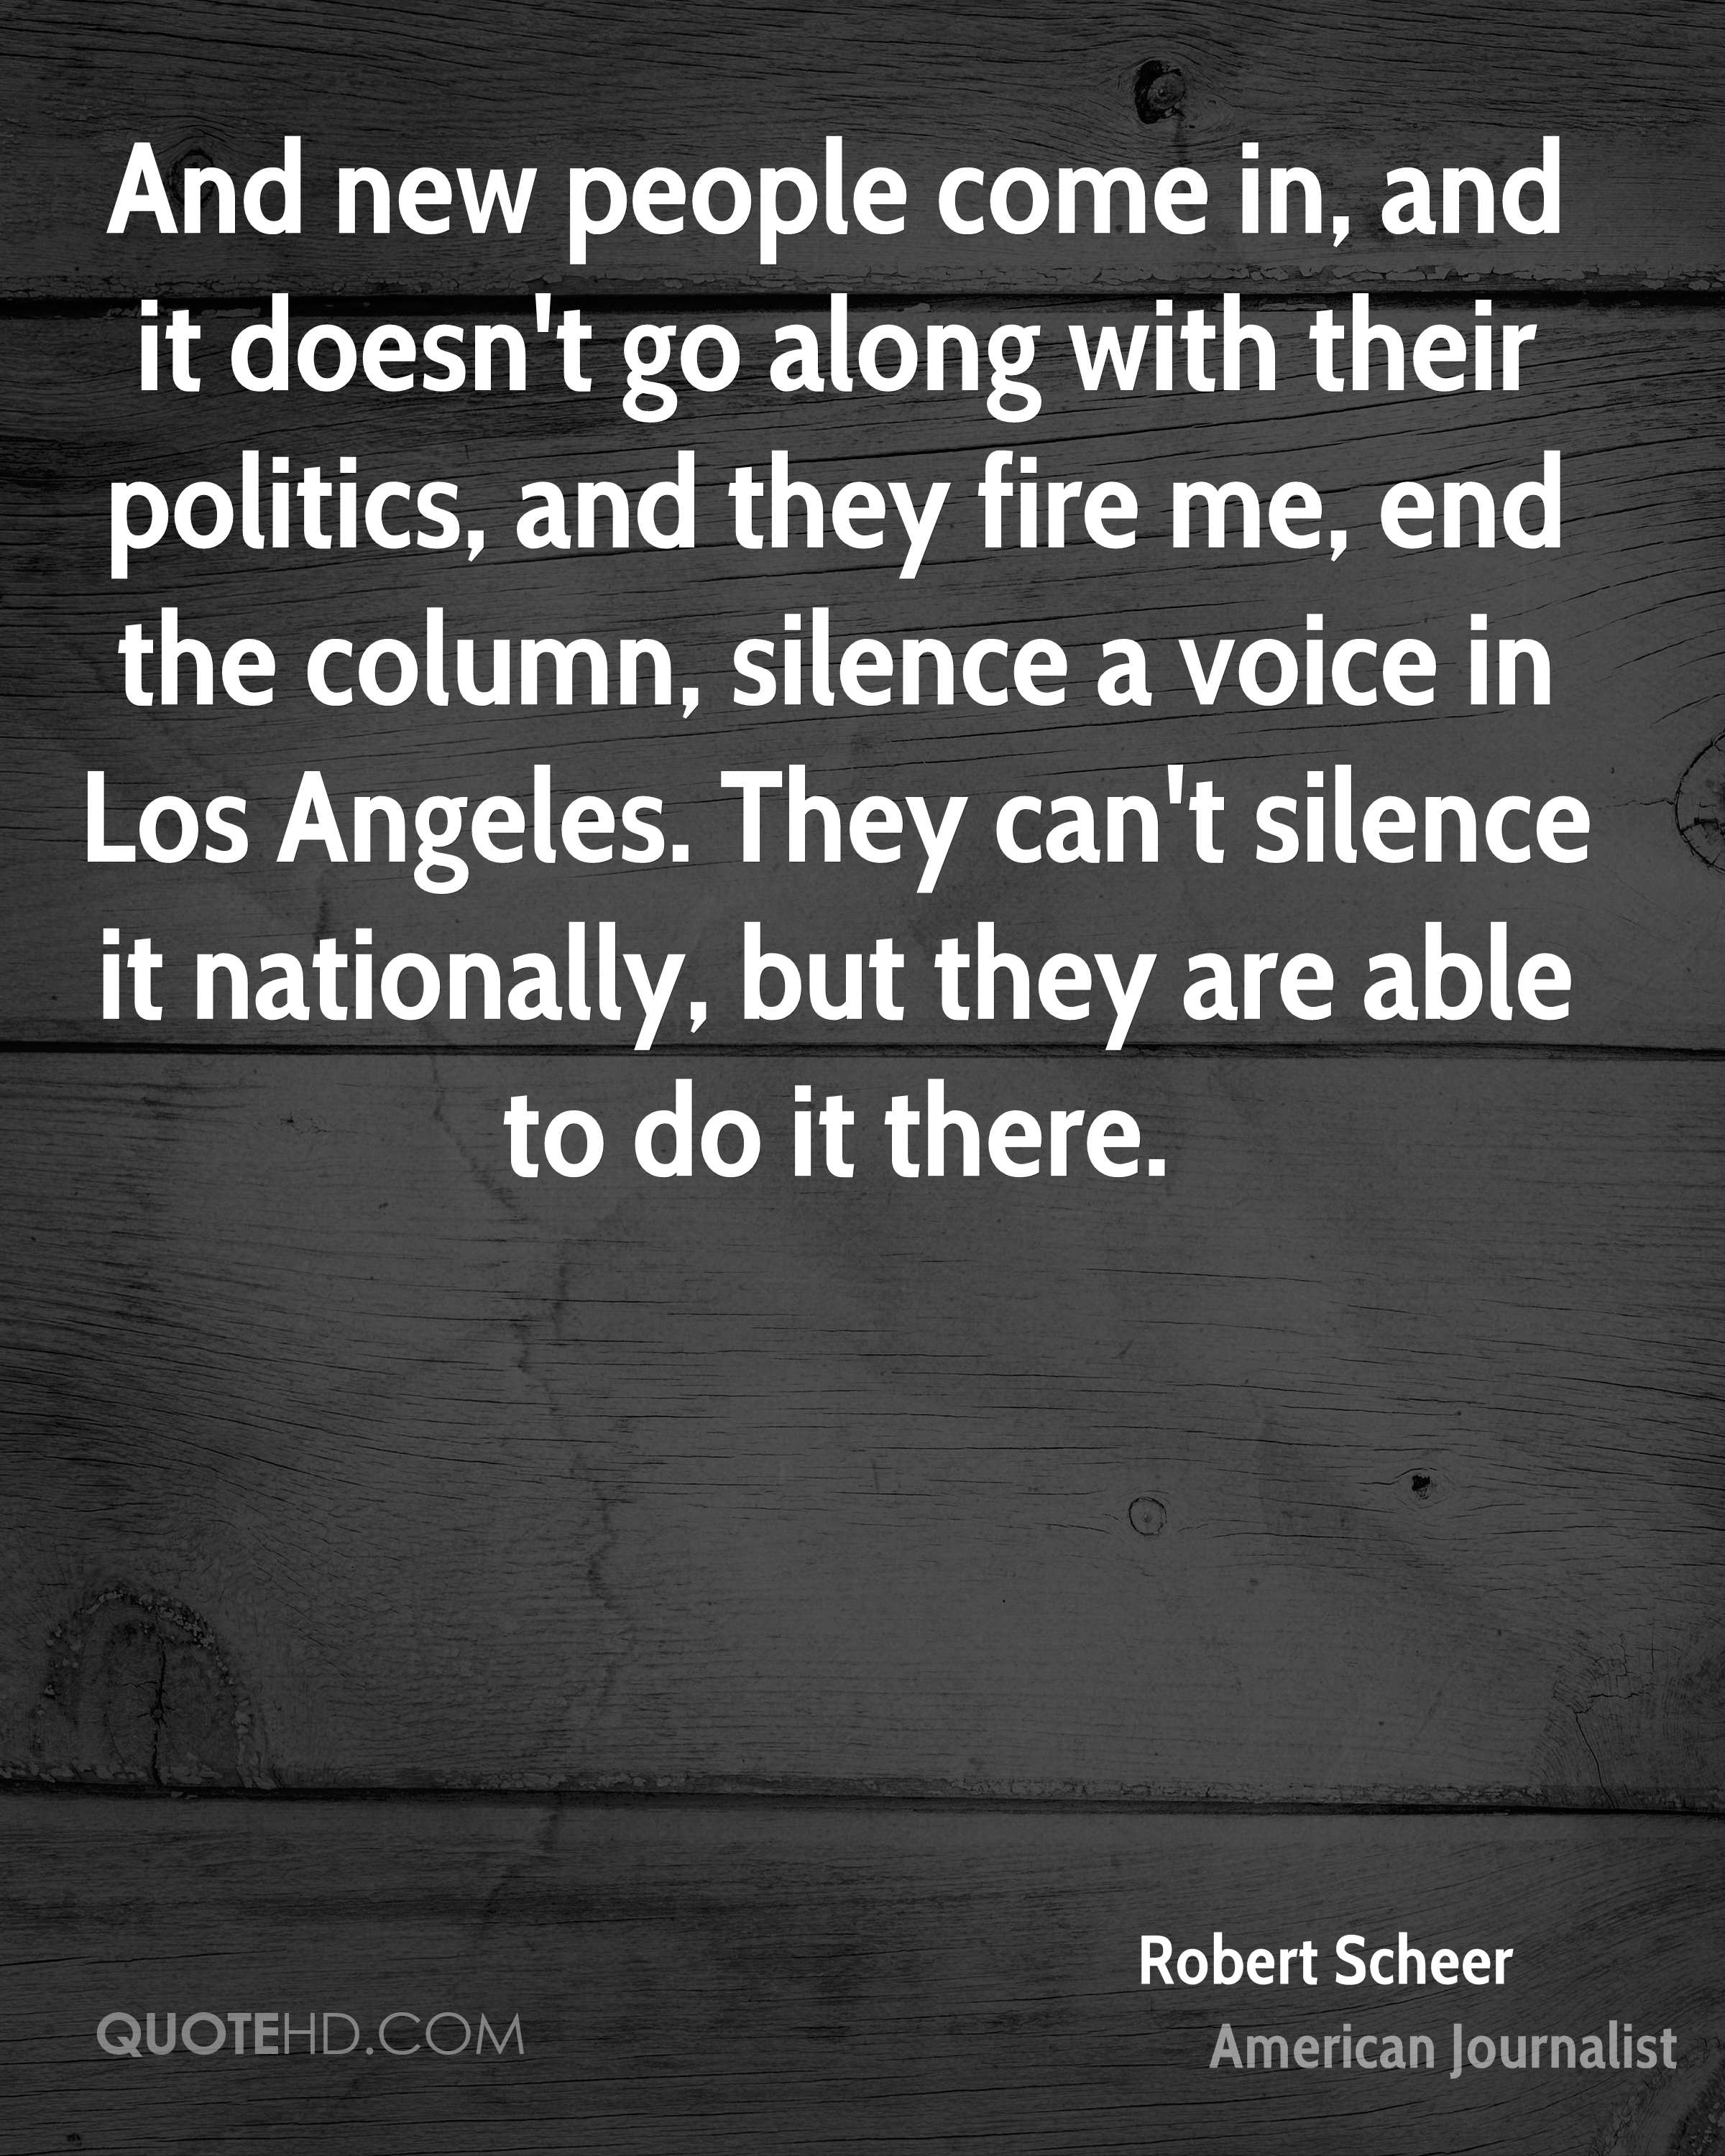 And new people come in, and it doesn't go along with their politics, and they fire me, end the column, silence a voice in Los Angeles. They can't silence it nationally, but they are able to do it there.